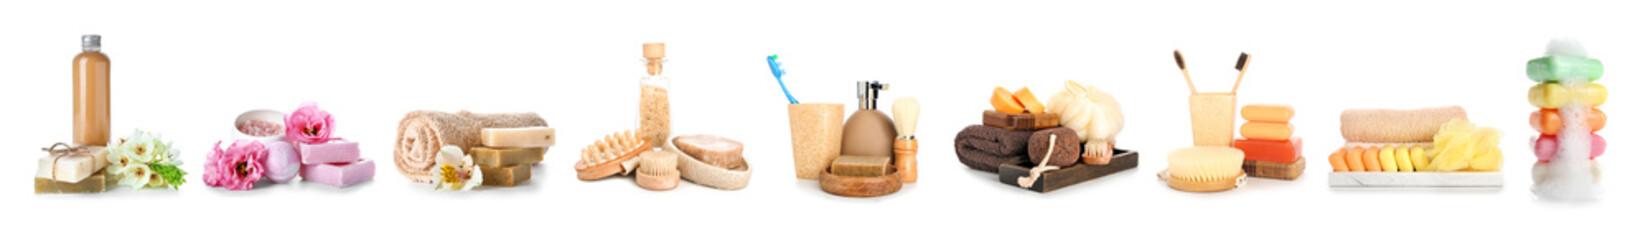 Composition with spa items on white background